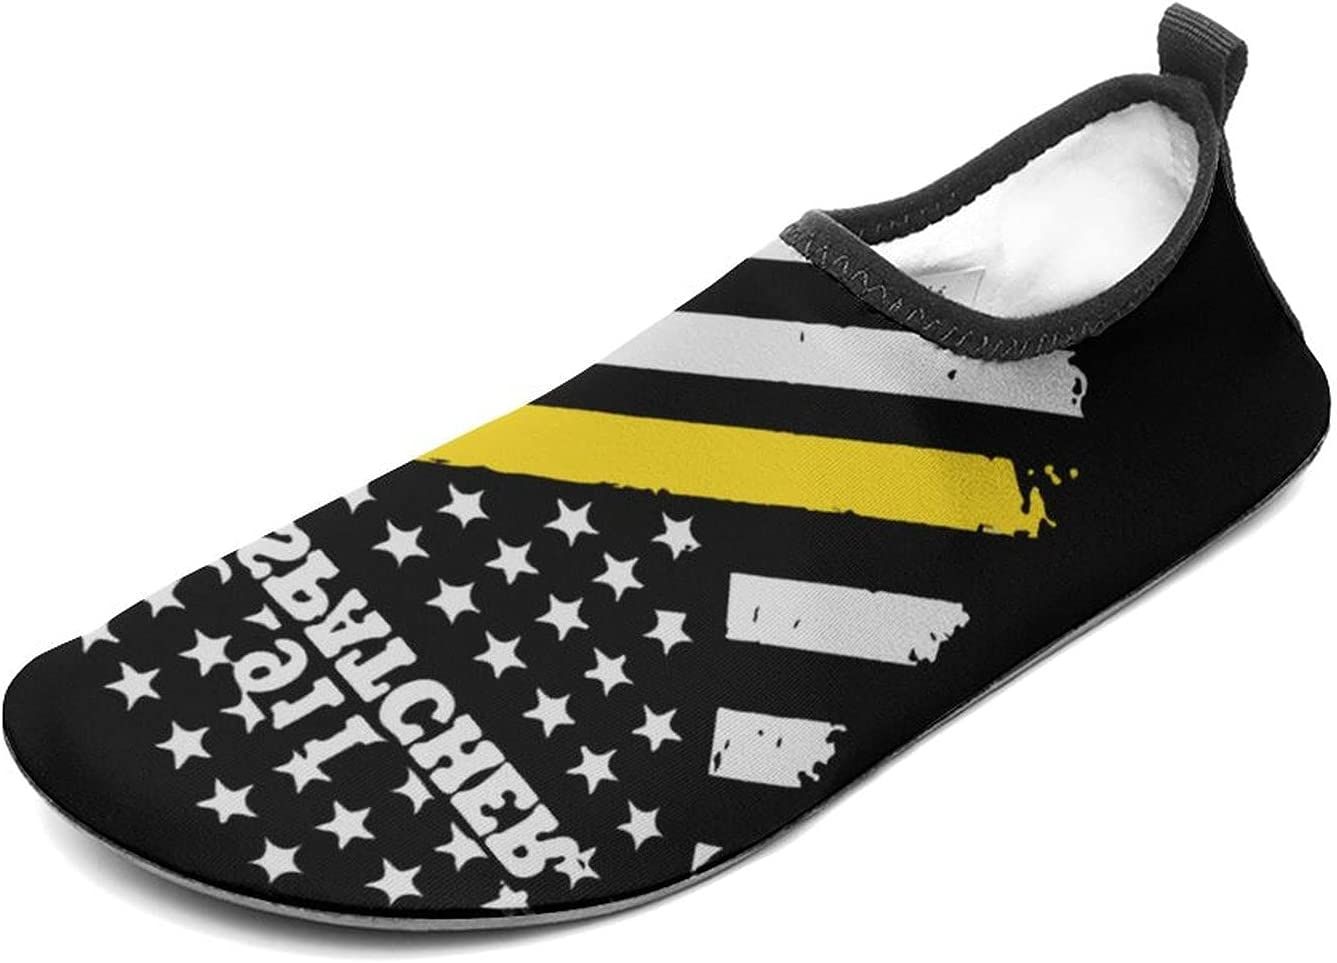 Inventory cleanup selling sale WEEDKEYCAT Limited price sale 911 Dispatcher Thin Gold Line Fun Water fo Flag Shoes